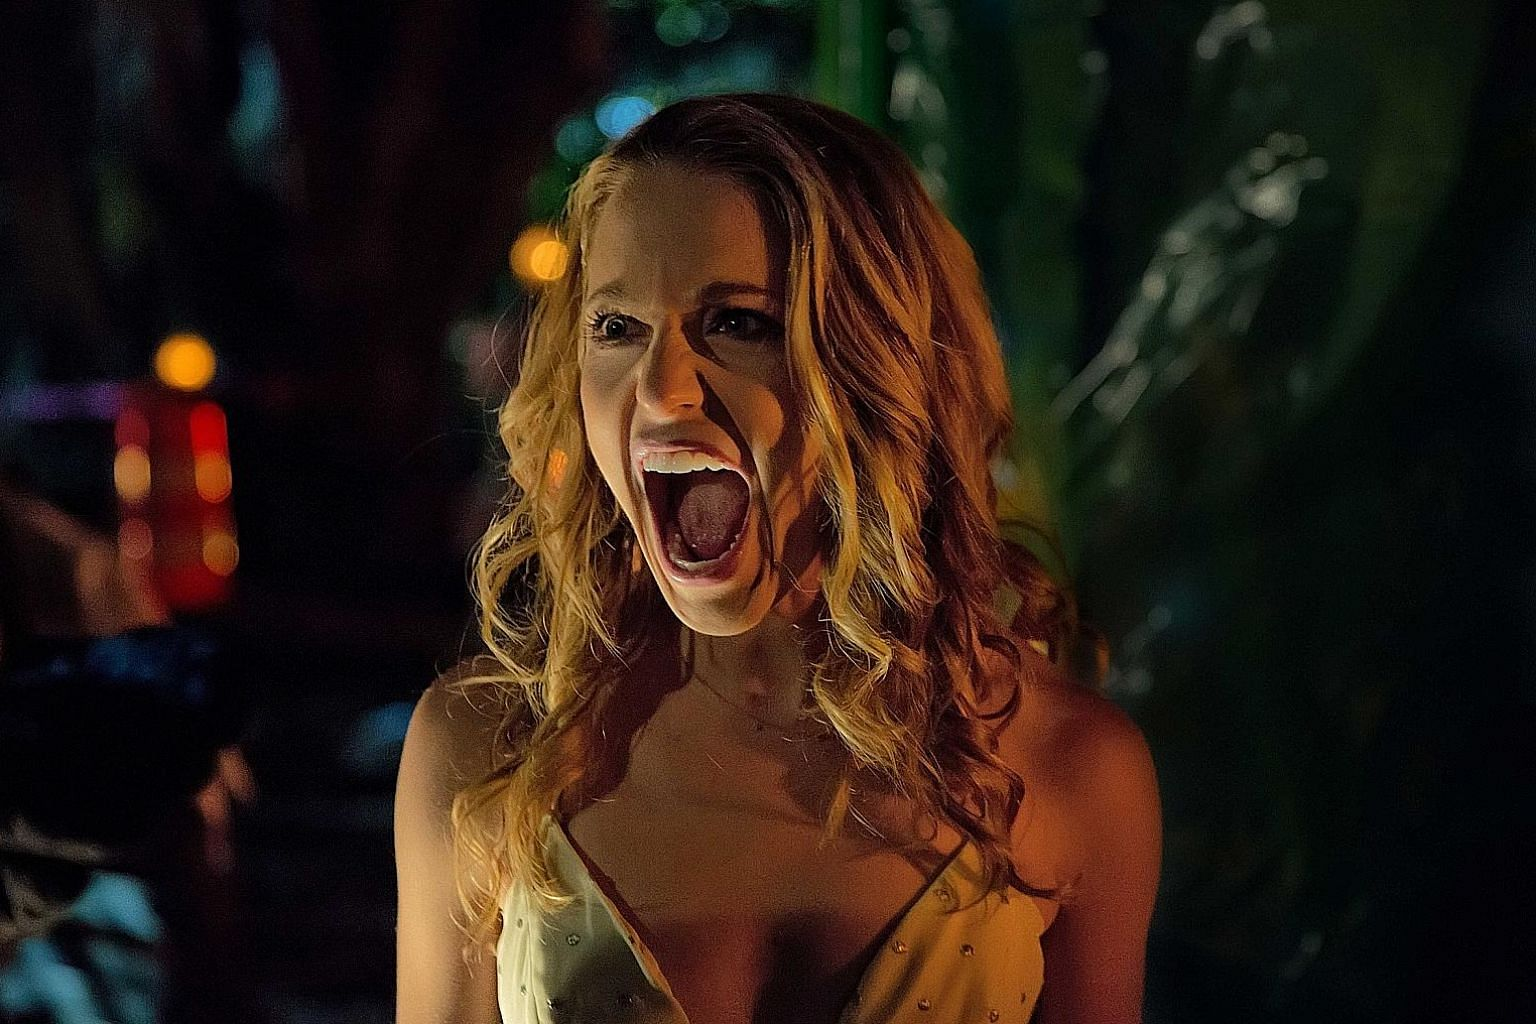 Playing a character who is killed several times in Happy Death Day, Jessica Rothe had to scream loudly and often.